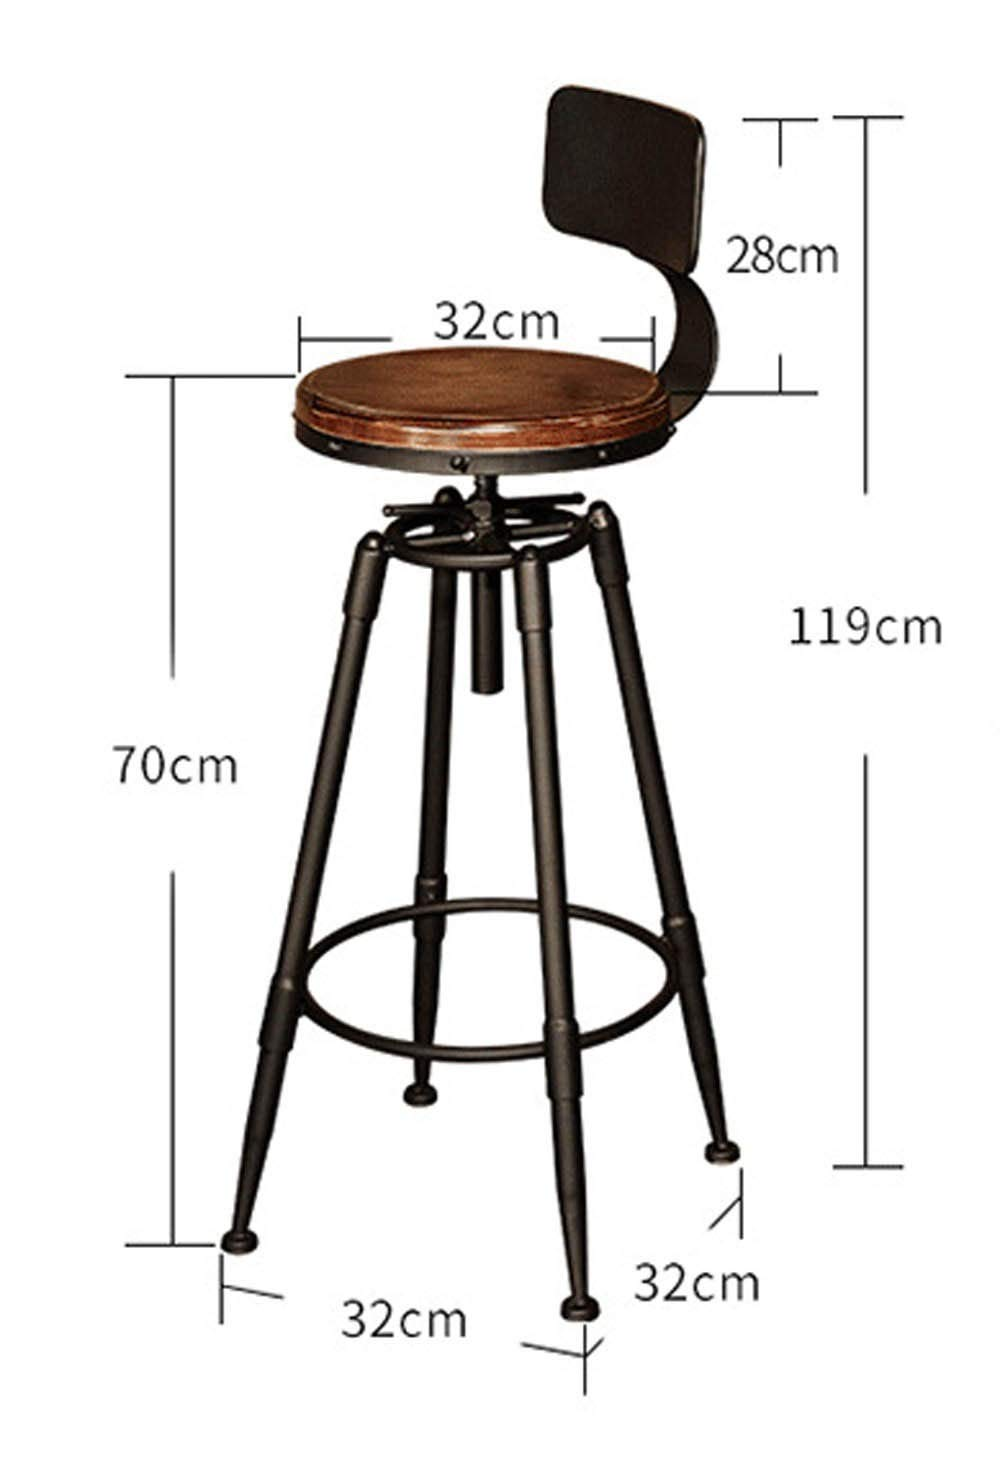 AO-stools Iron Bar Stool Front Desk High Bar Stool Bar Chair Cafe by AO (Image #3)